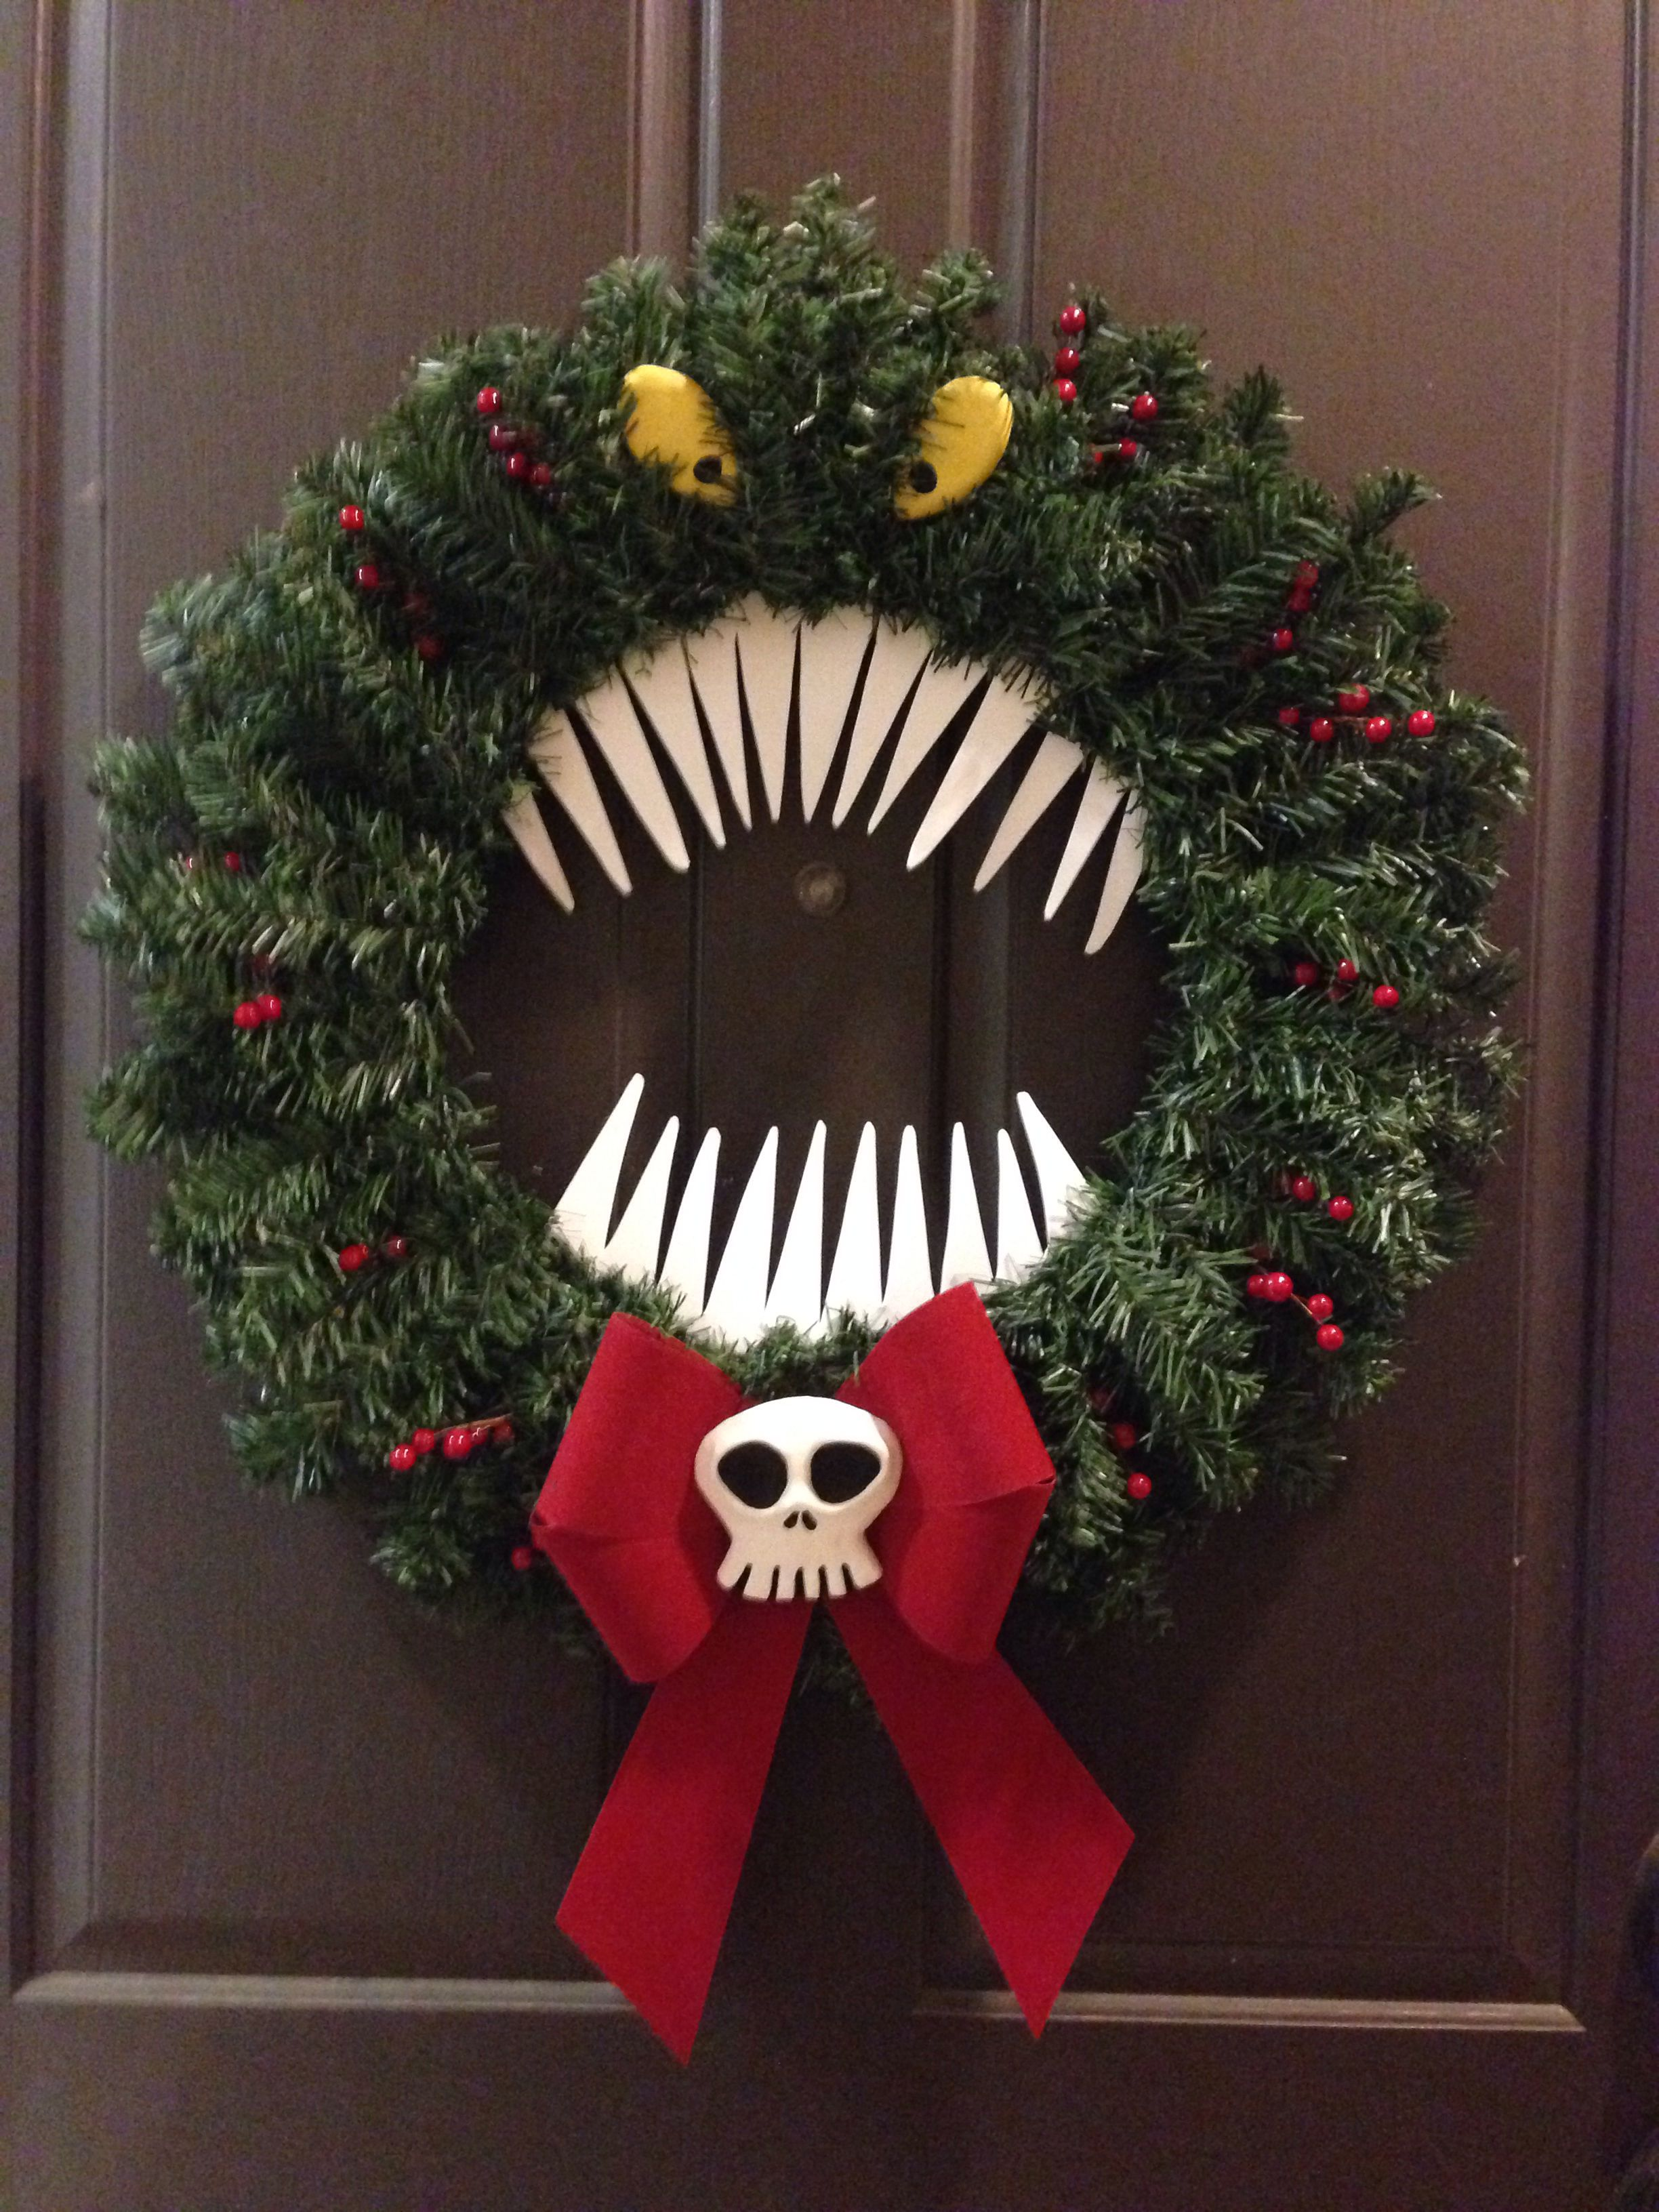 Man Eating Wreath Inspired From The Nightmare Bef Nightmare Before Christmas Wreath Nightmare Before Christmas Halloween Nightmare Before Christmas Decorations